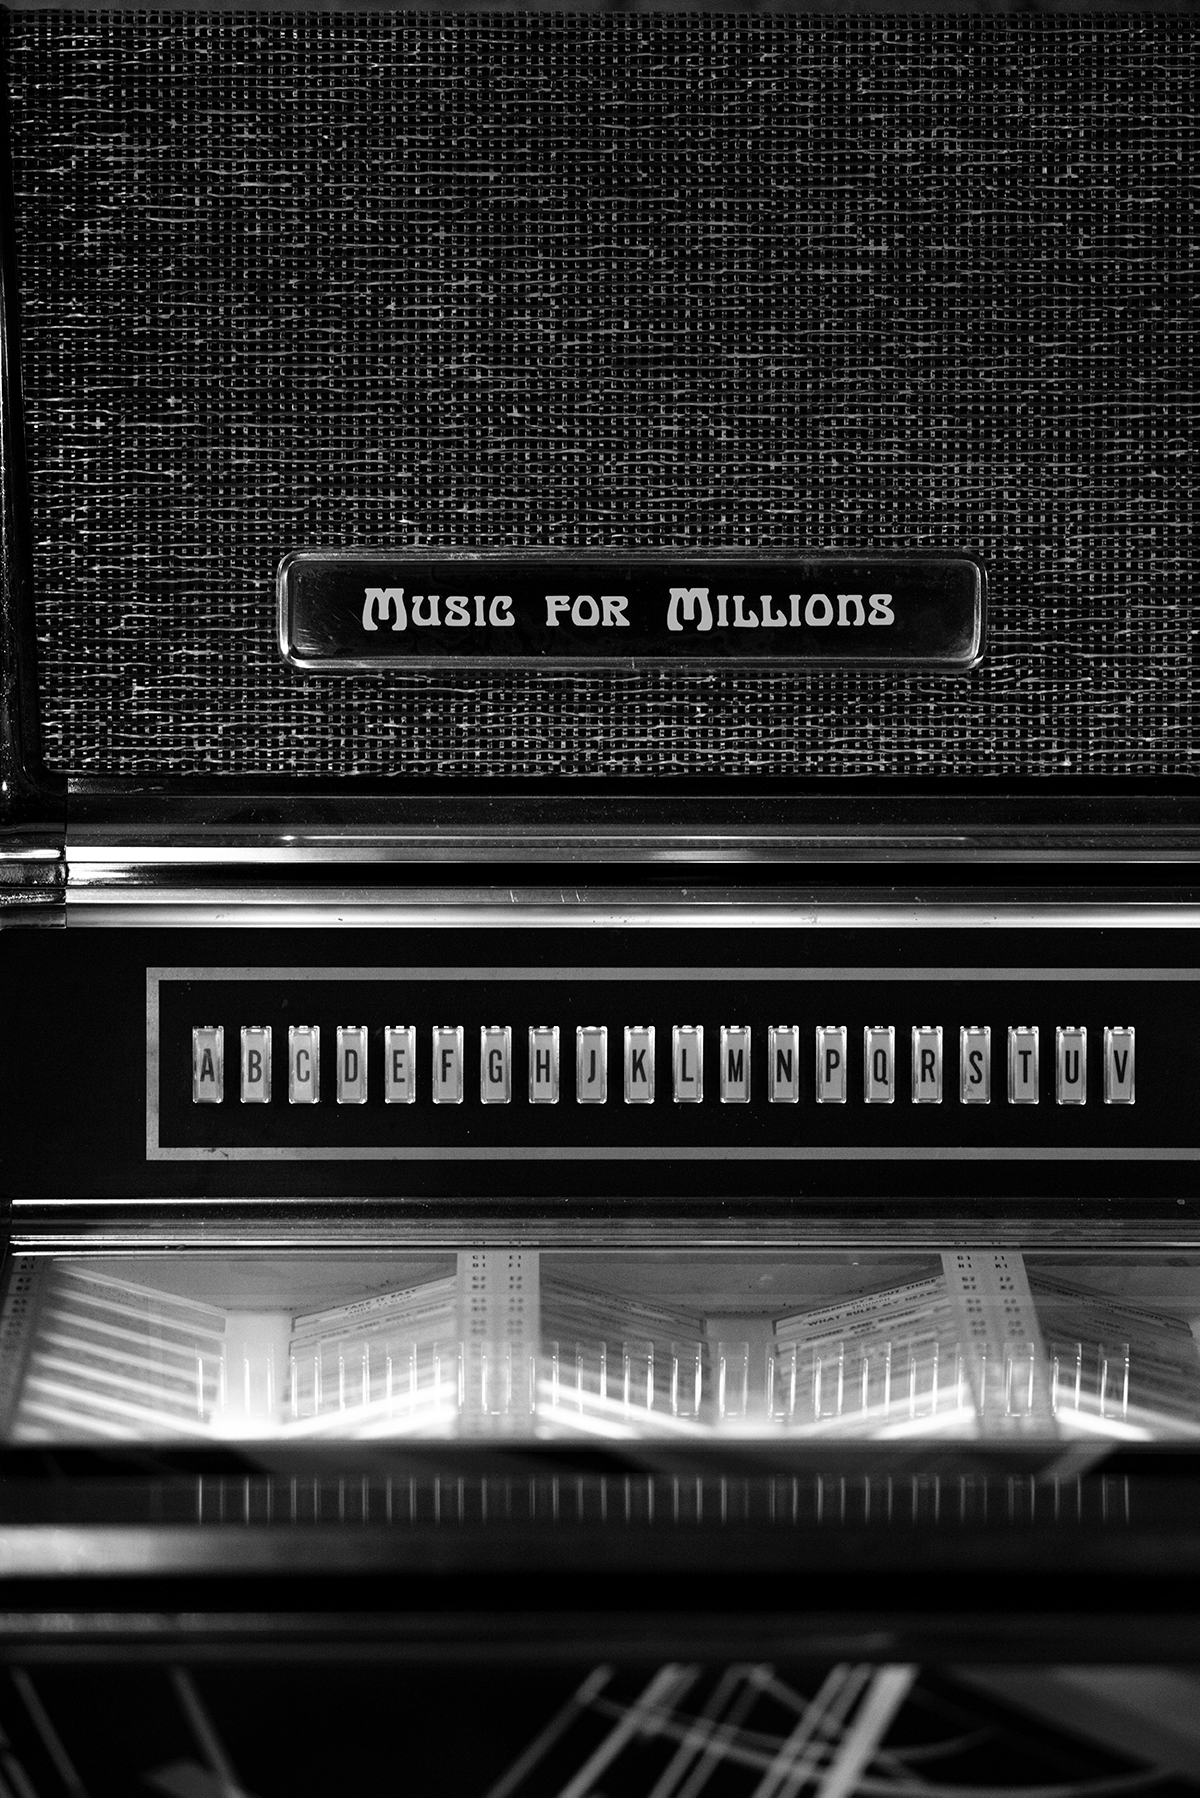 judebox : Music for millions